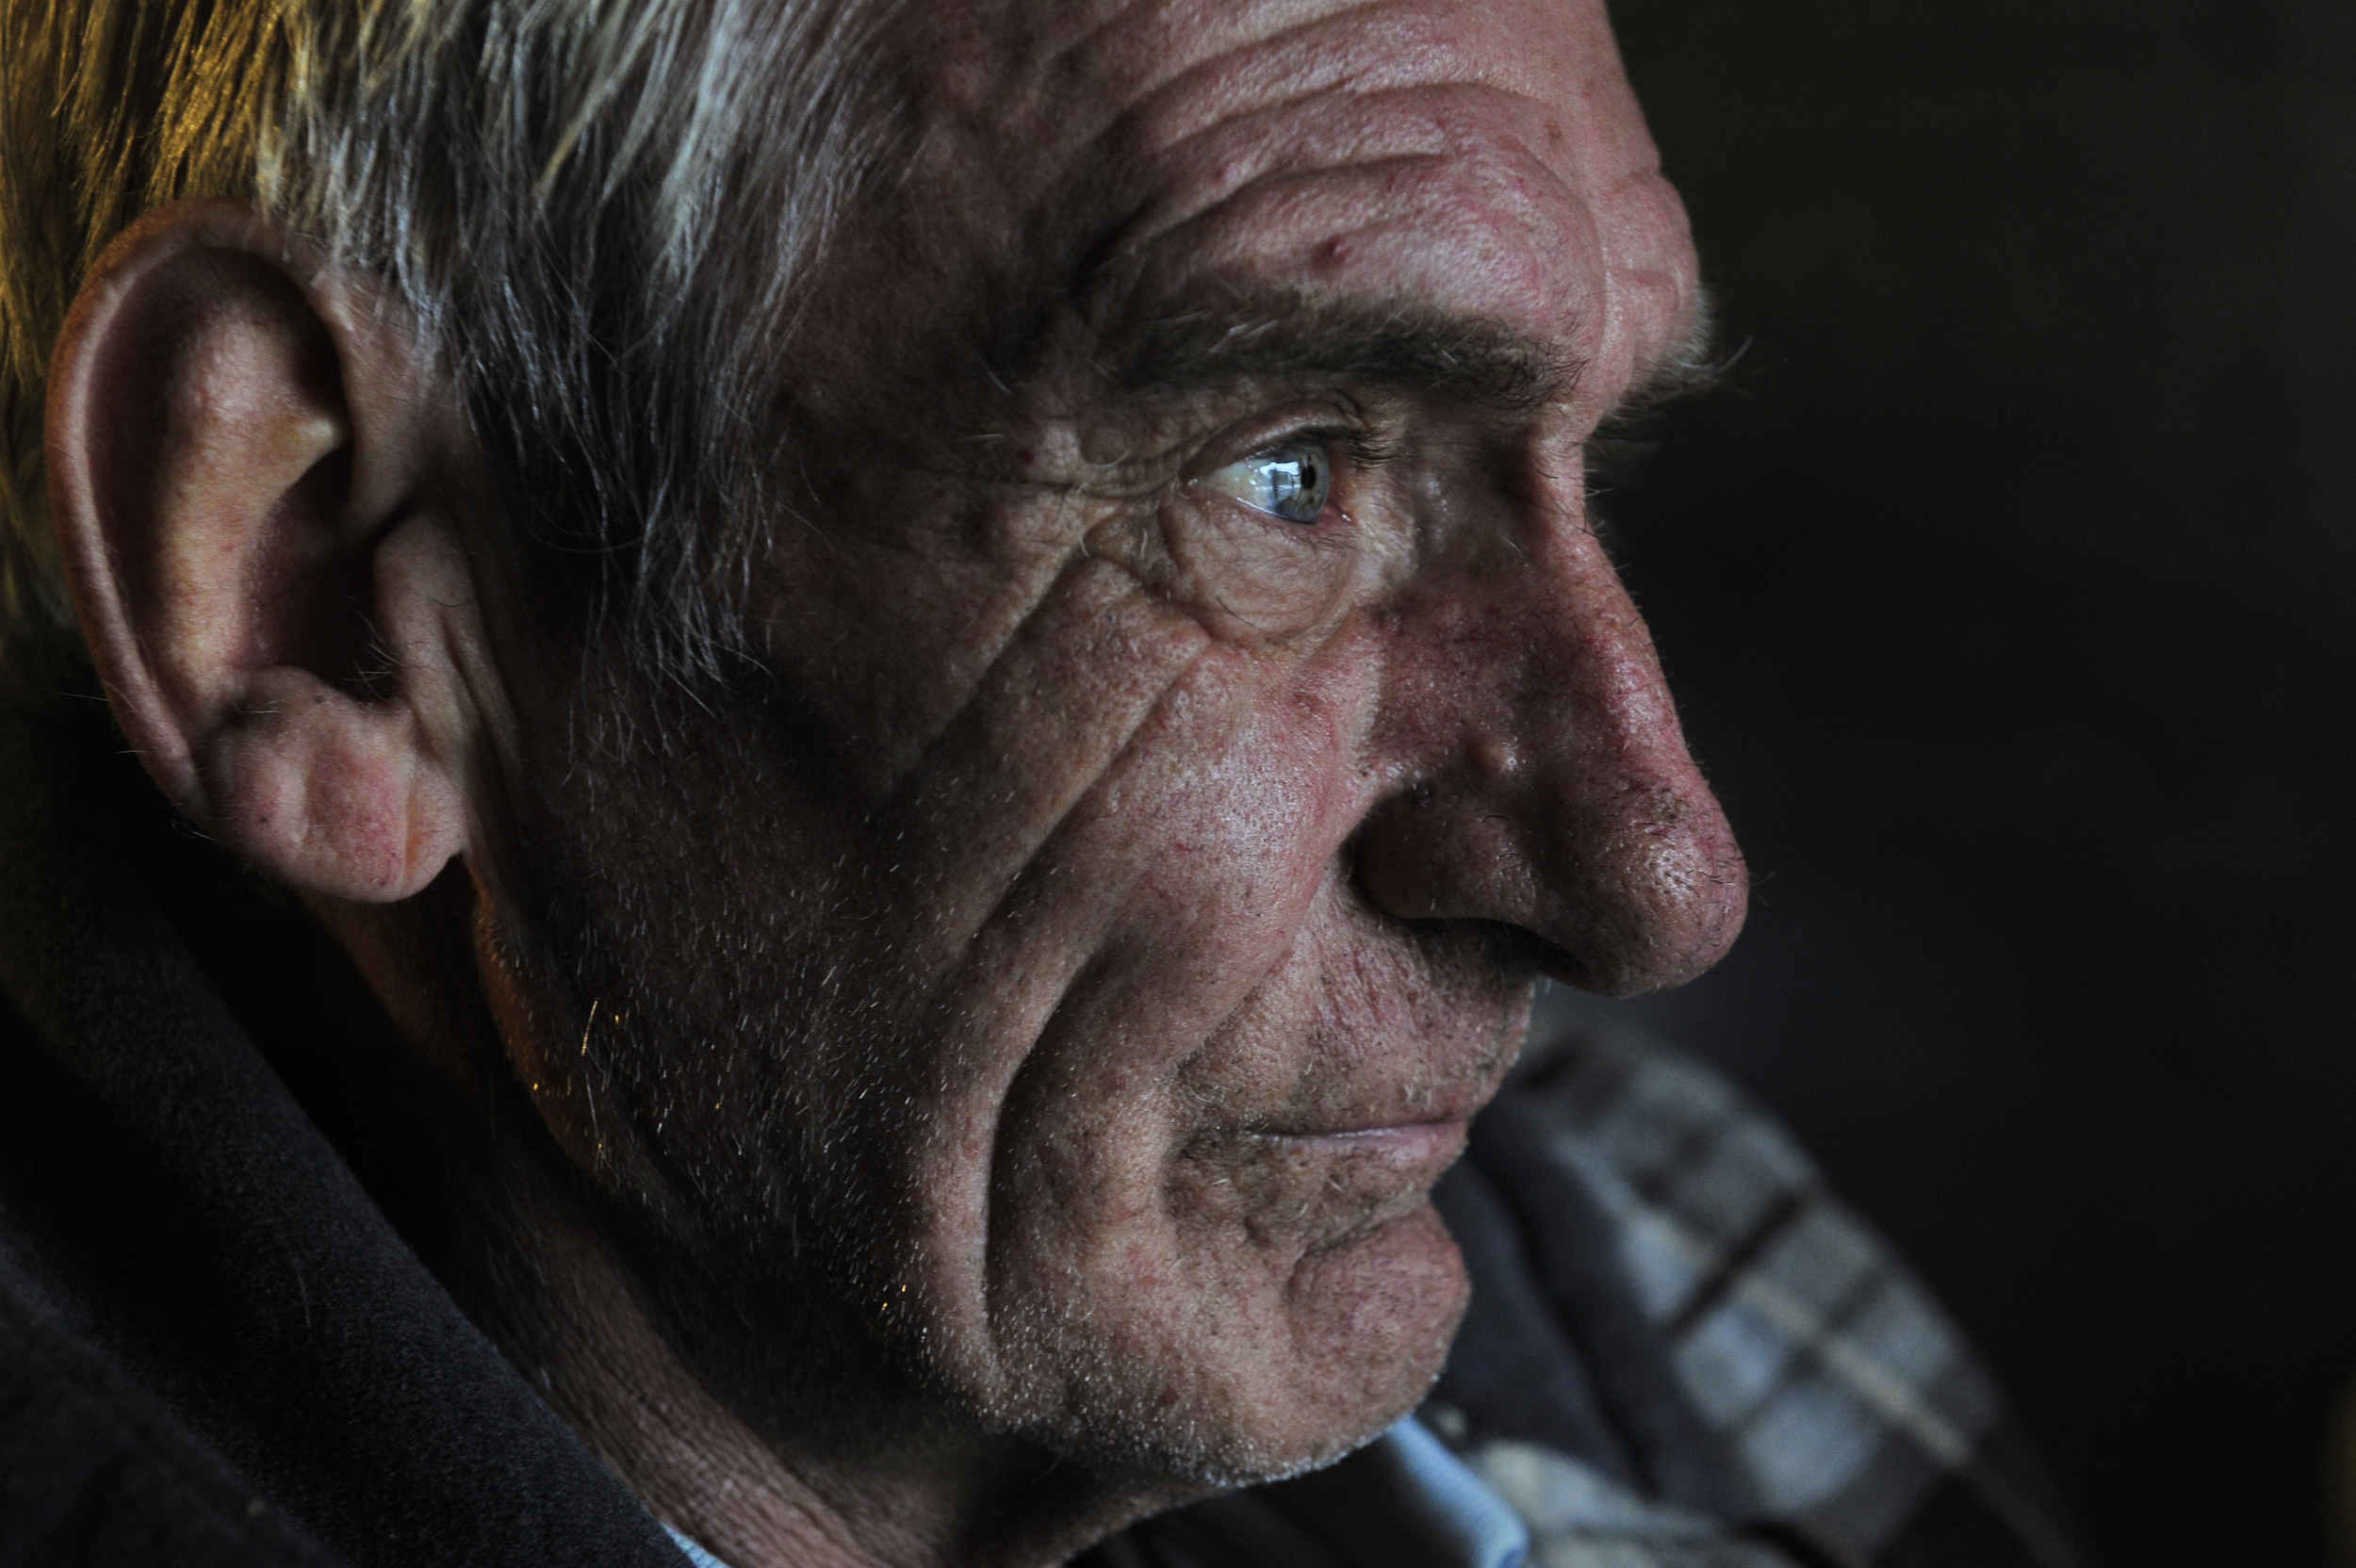 Ronnie Johnson, diagnosed with late-stage cancer, lives in an uninsulated shed behind a gas station in Thompson Station, Tenn. Town residents raised money for health care costs and an apartment.